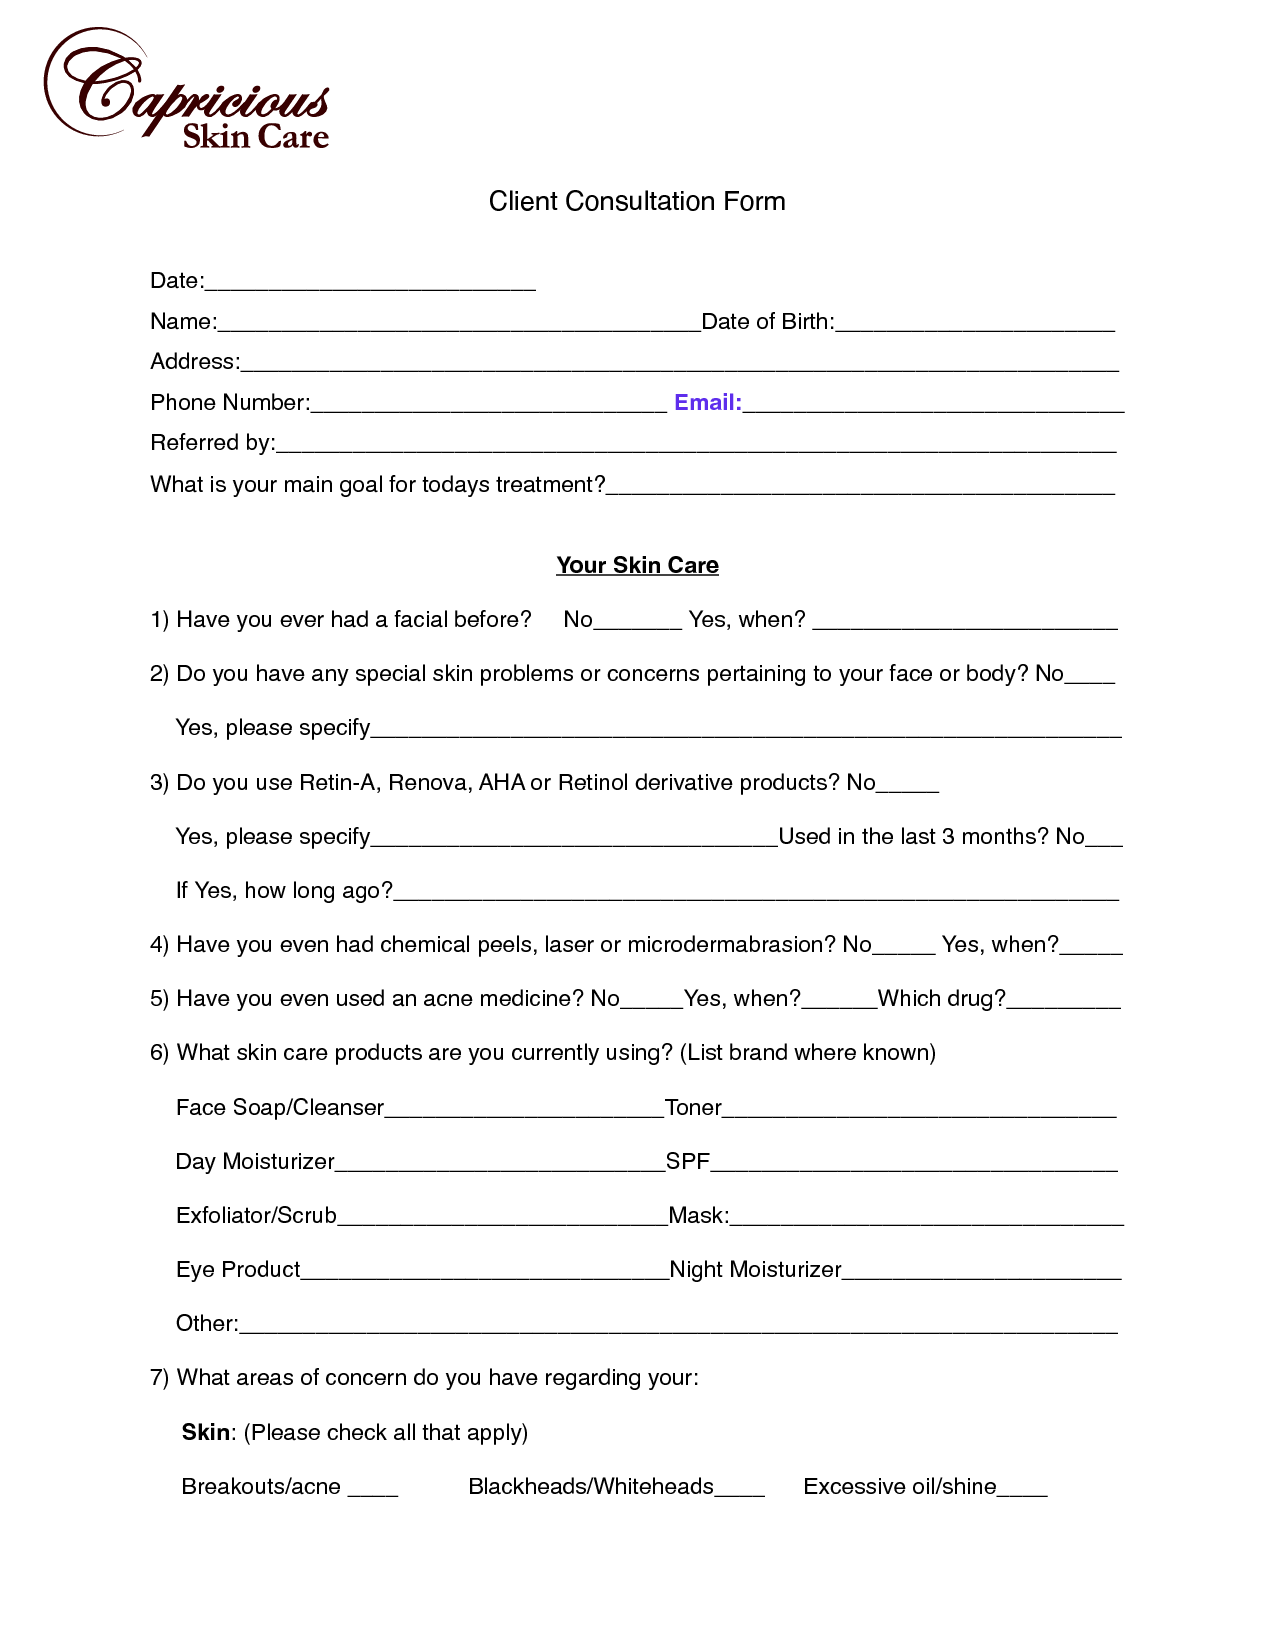 image chemical peel consultation form Client